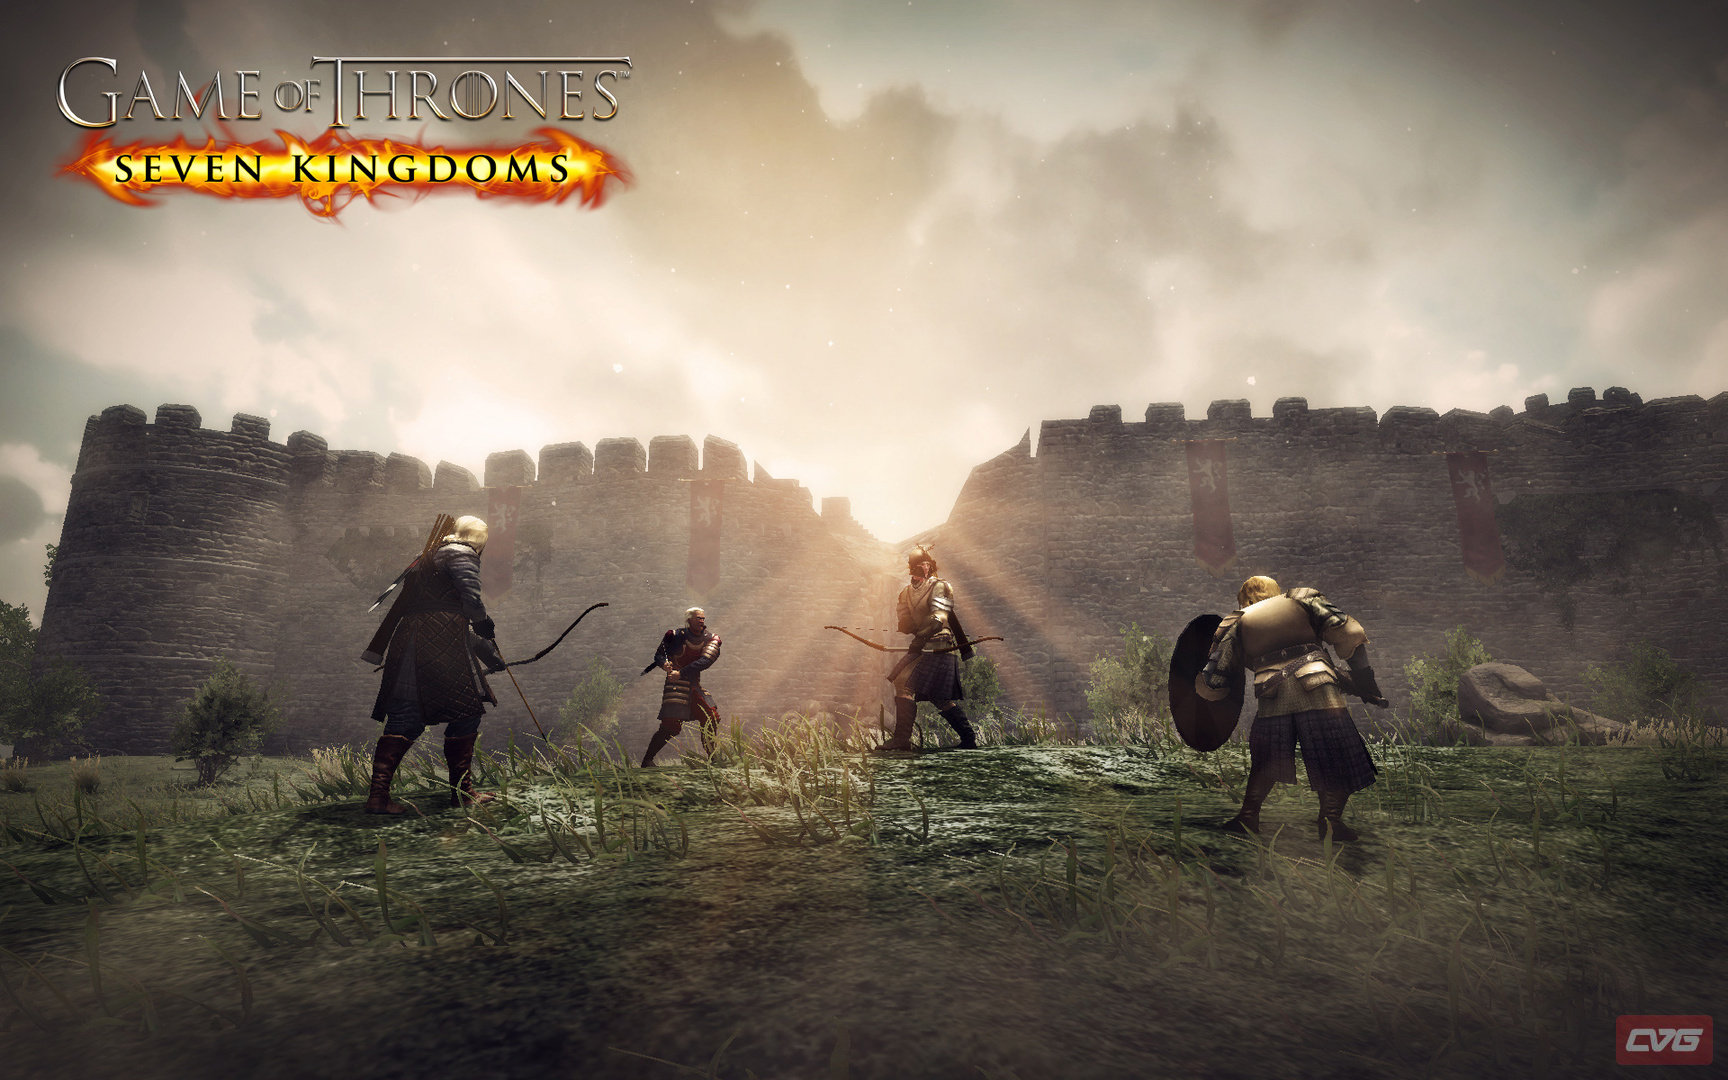 Se viene MMO gratuito de Game of Thrones [ANUNCIOS]